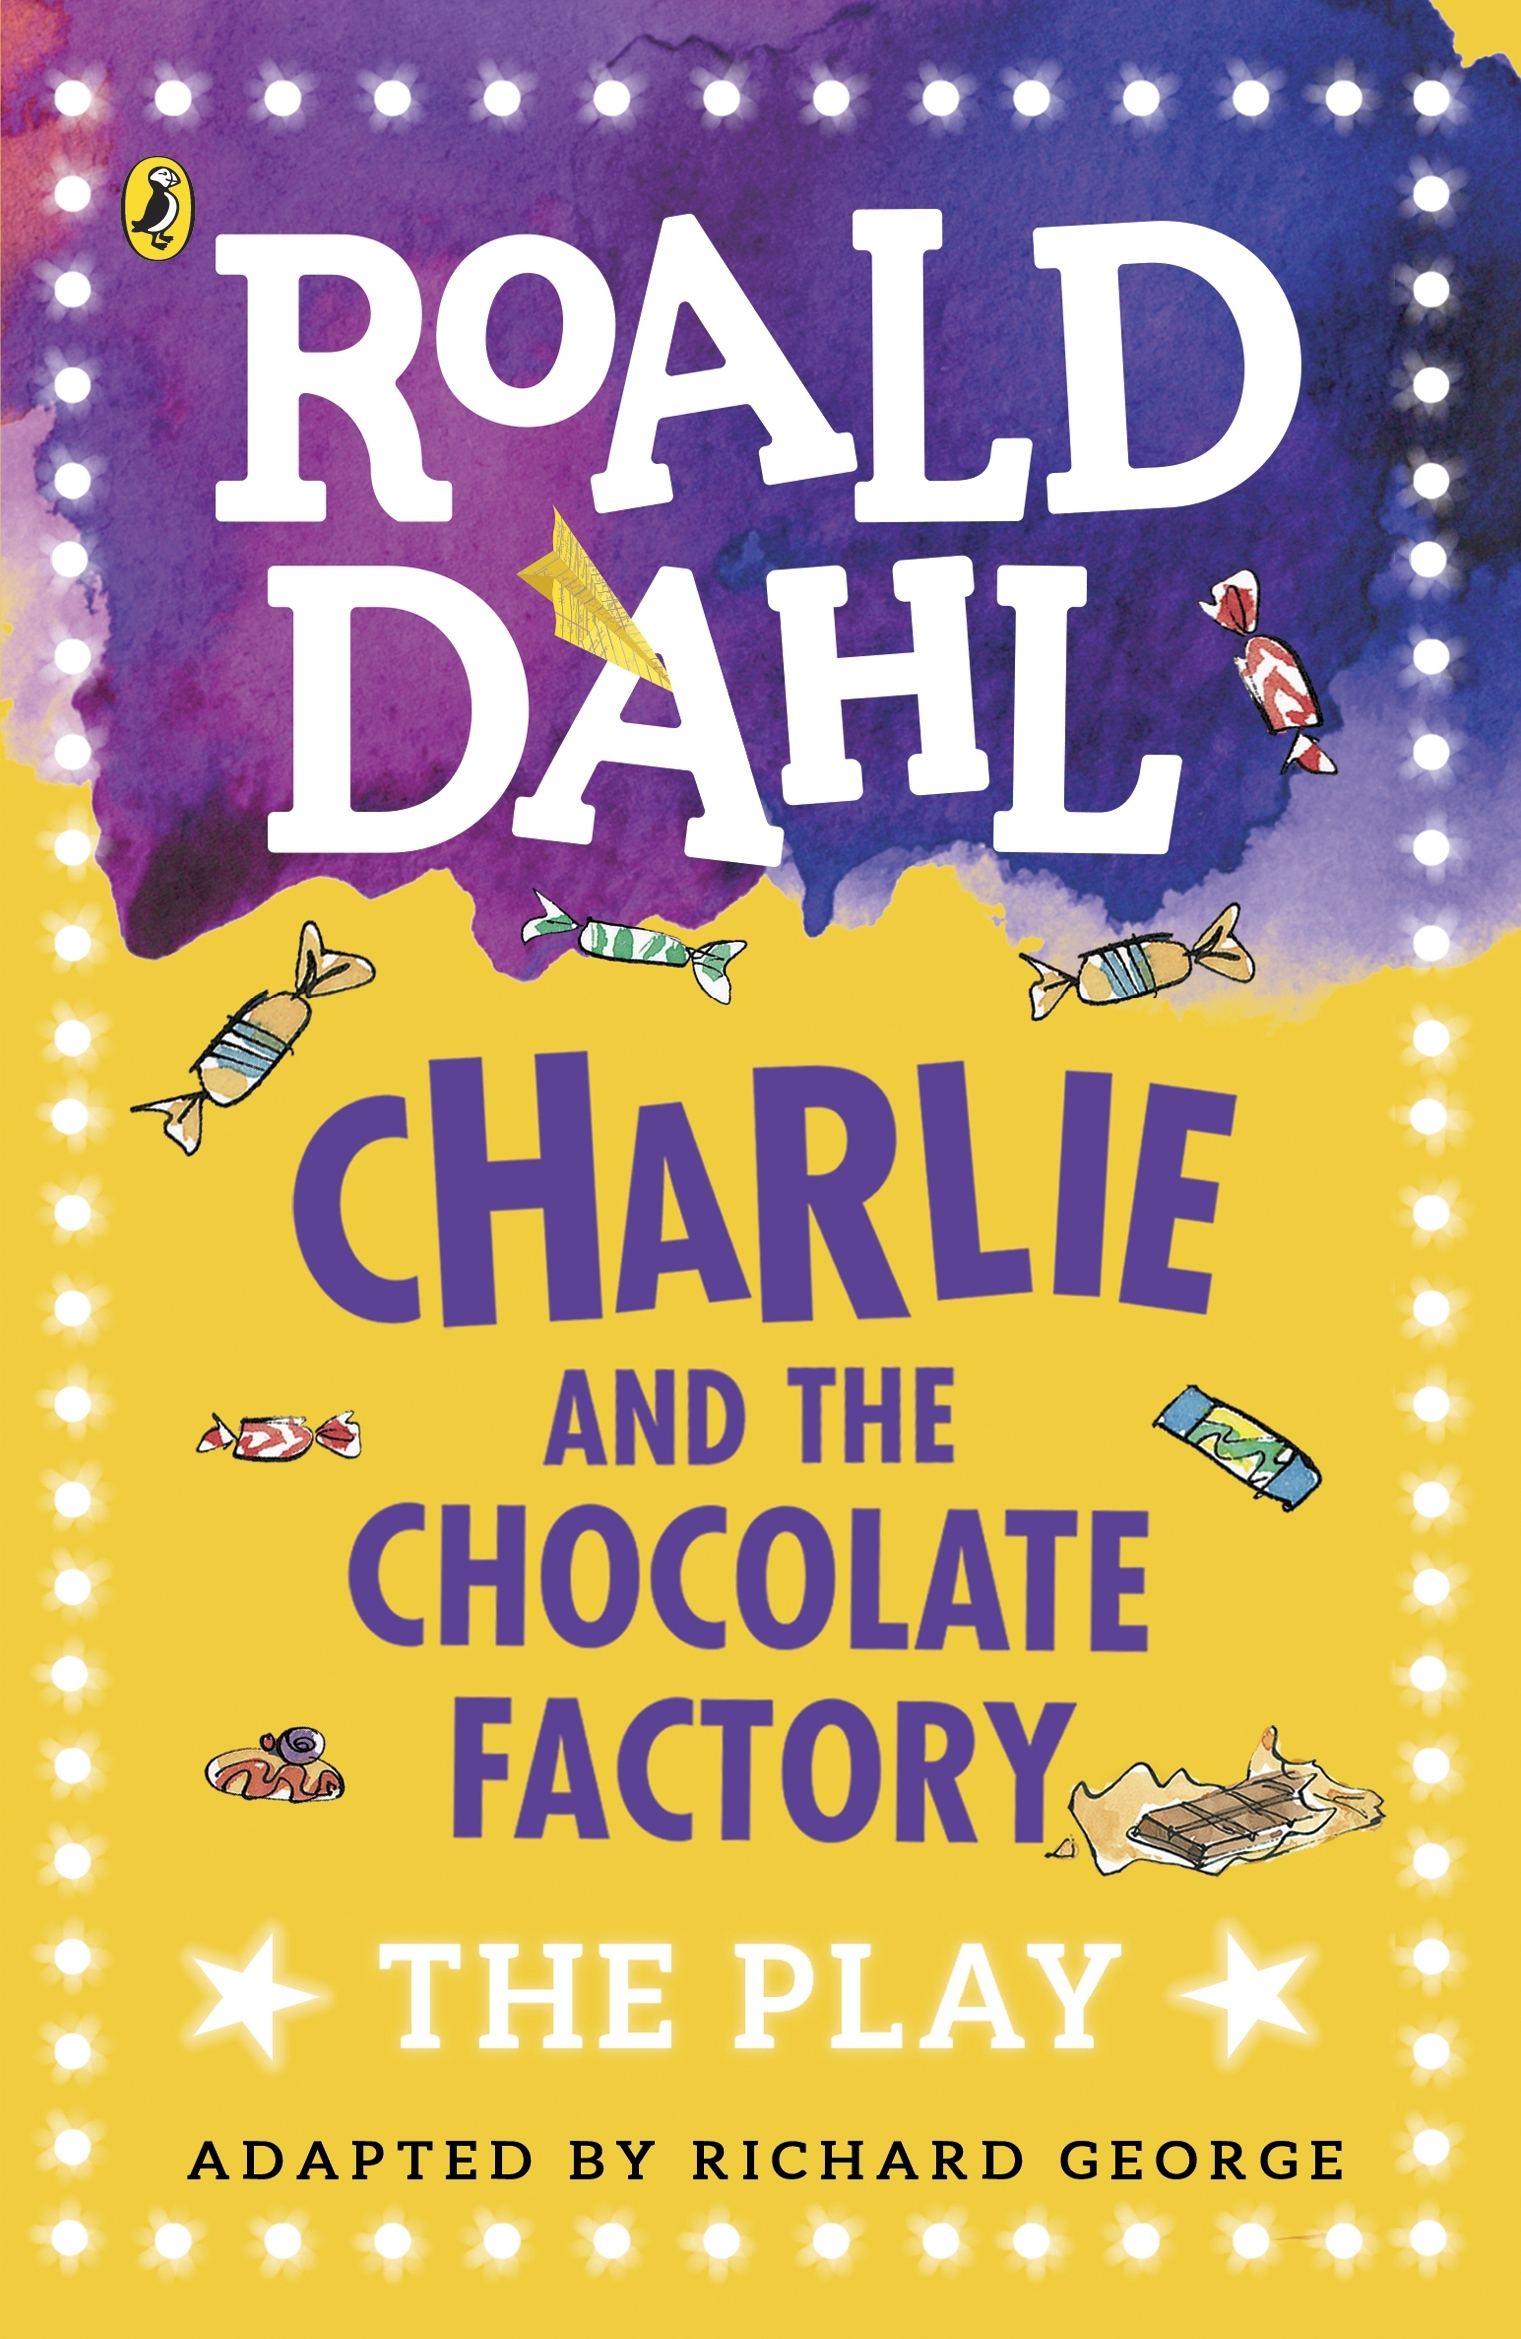 Charlie And The Chocolate Factory A Play By Roald Dahl